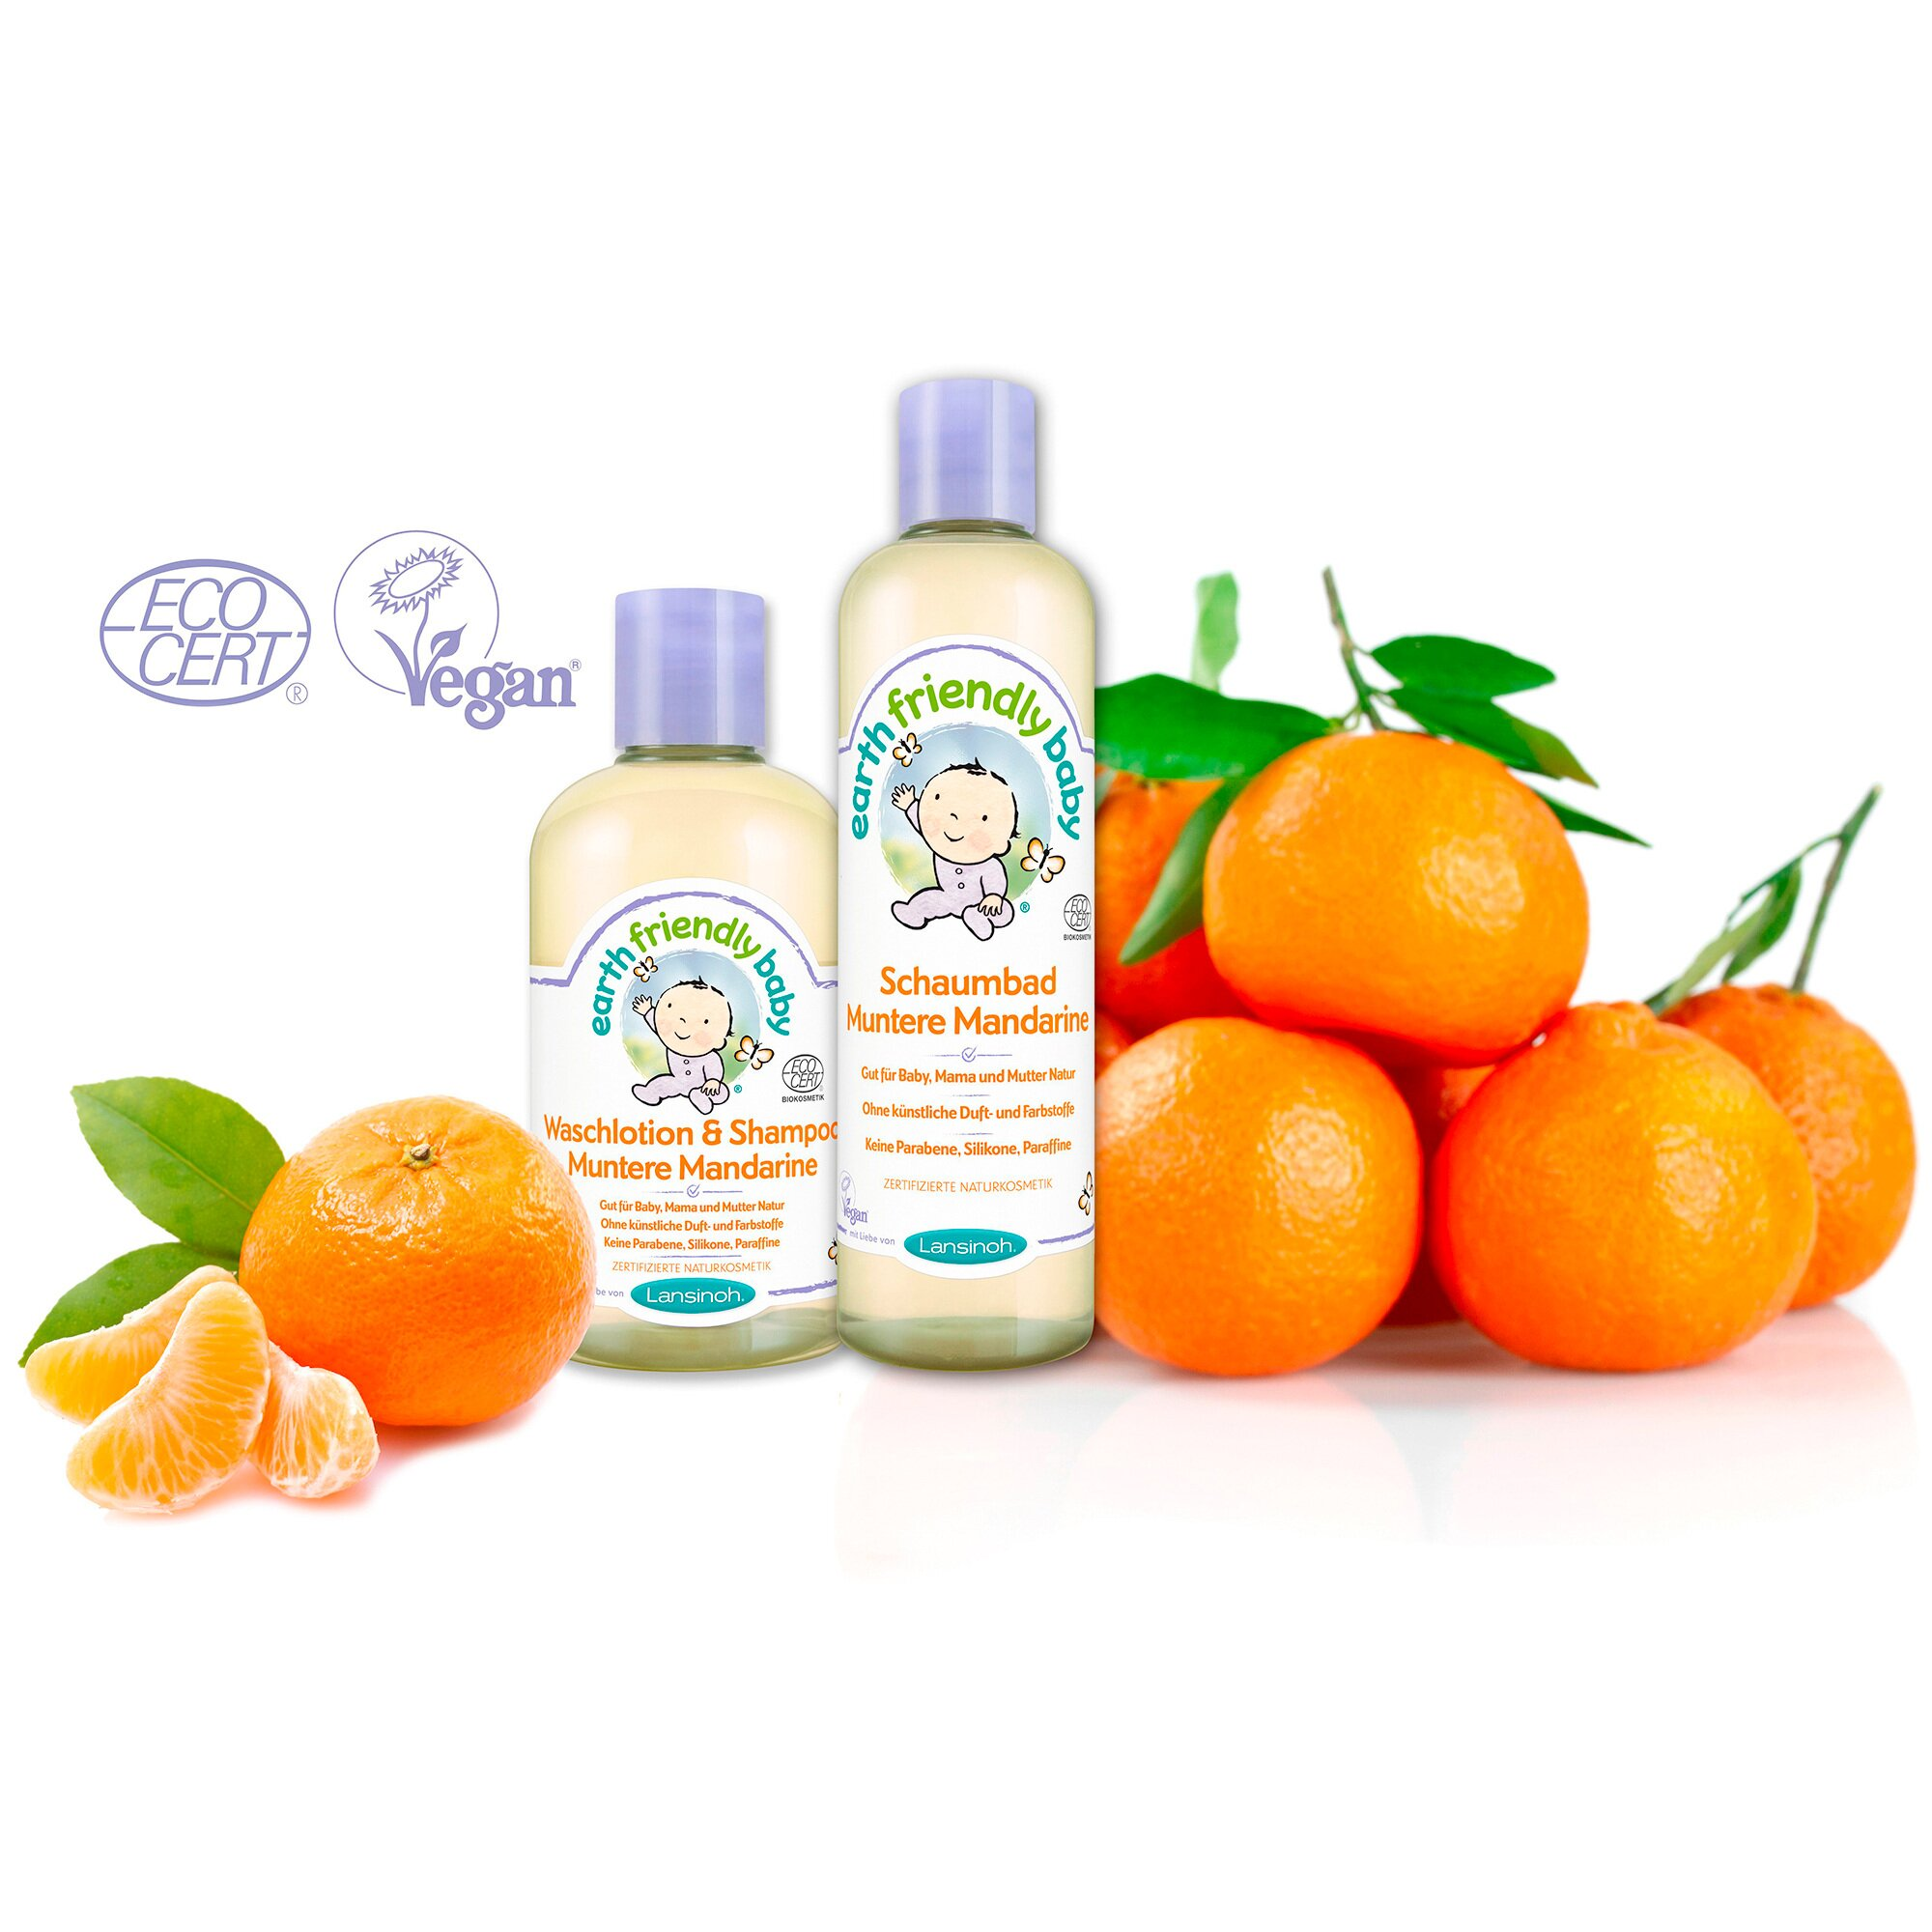 earth-friendly-baby-waschlotion-shampoo-muntere-mandarine-250-ml